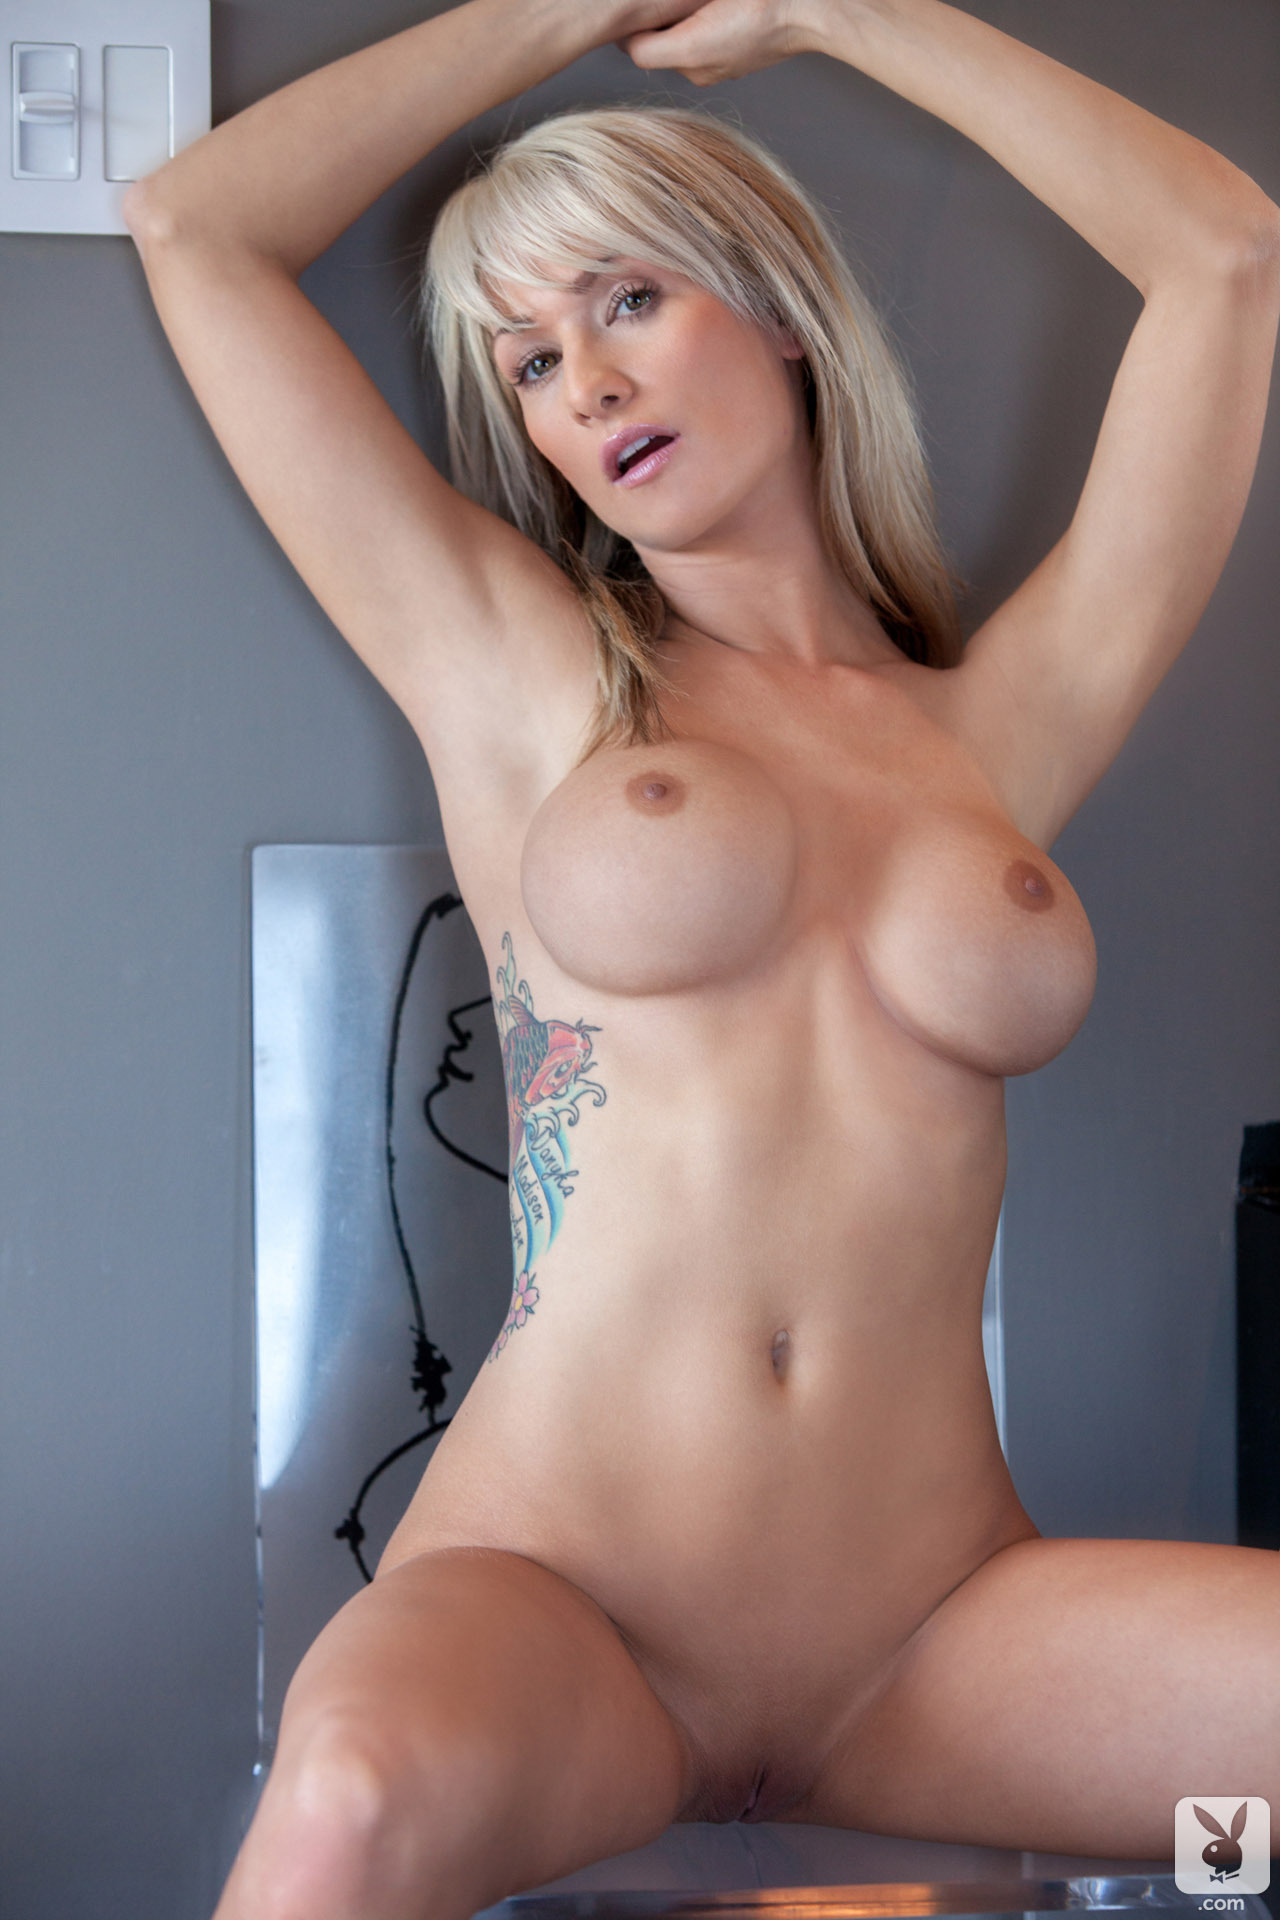 jessie-ann-blonde-boobs-bathtube-naked-playboy-11